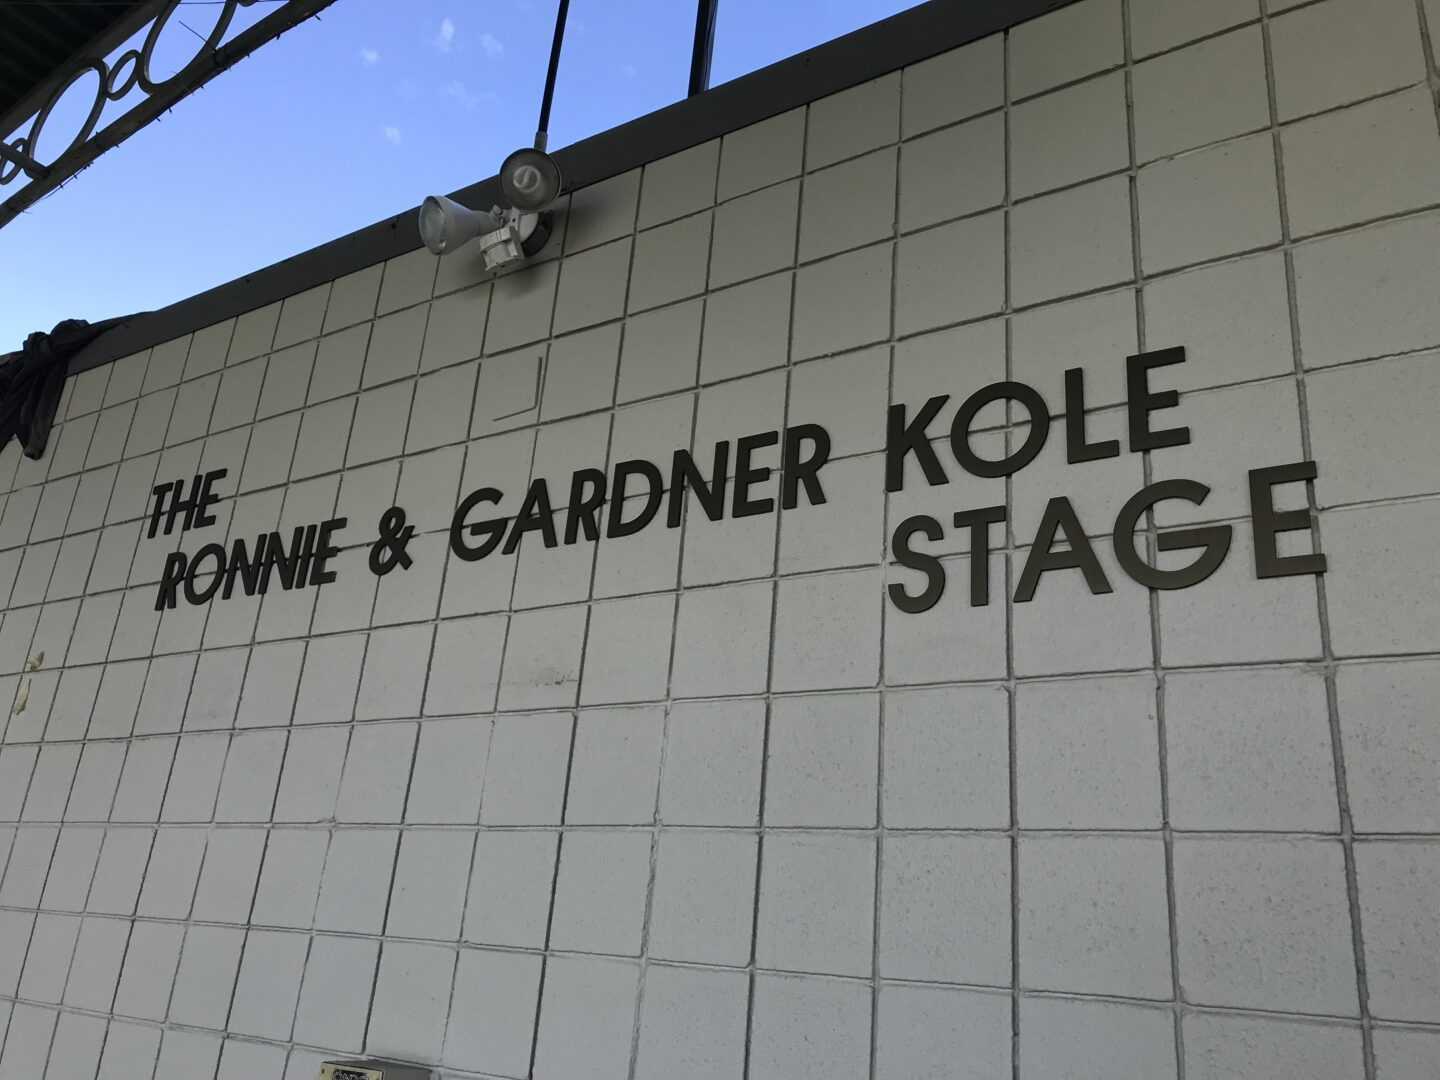 The Ronnie & Gardner Kole Stage Architectural Sign